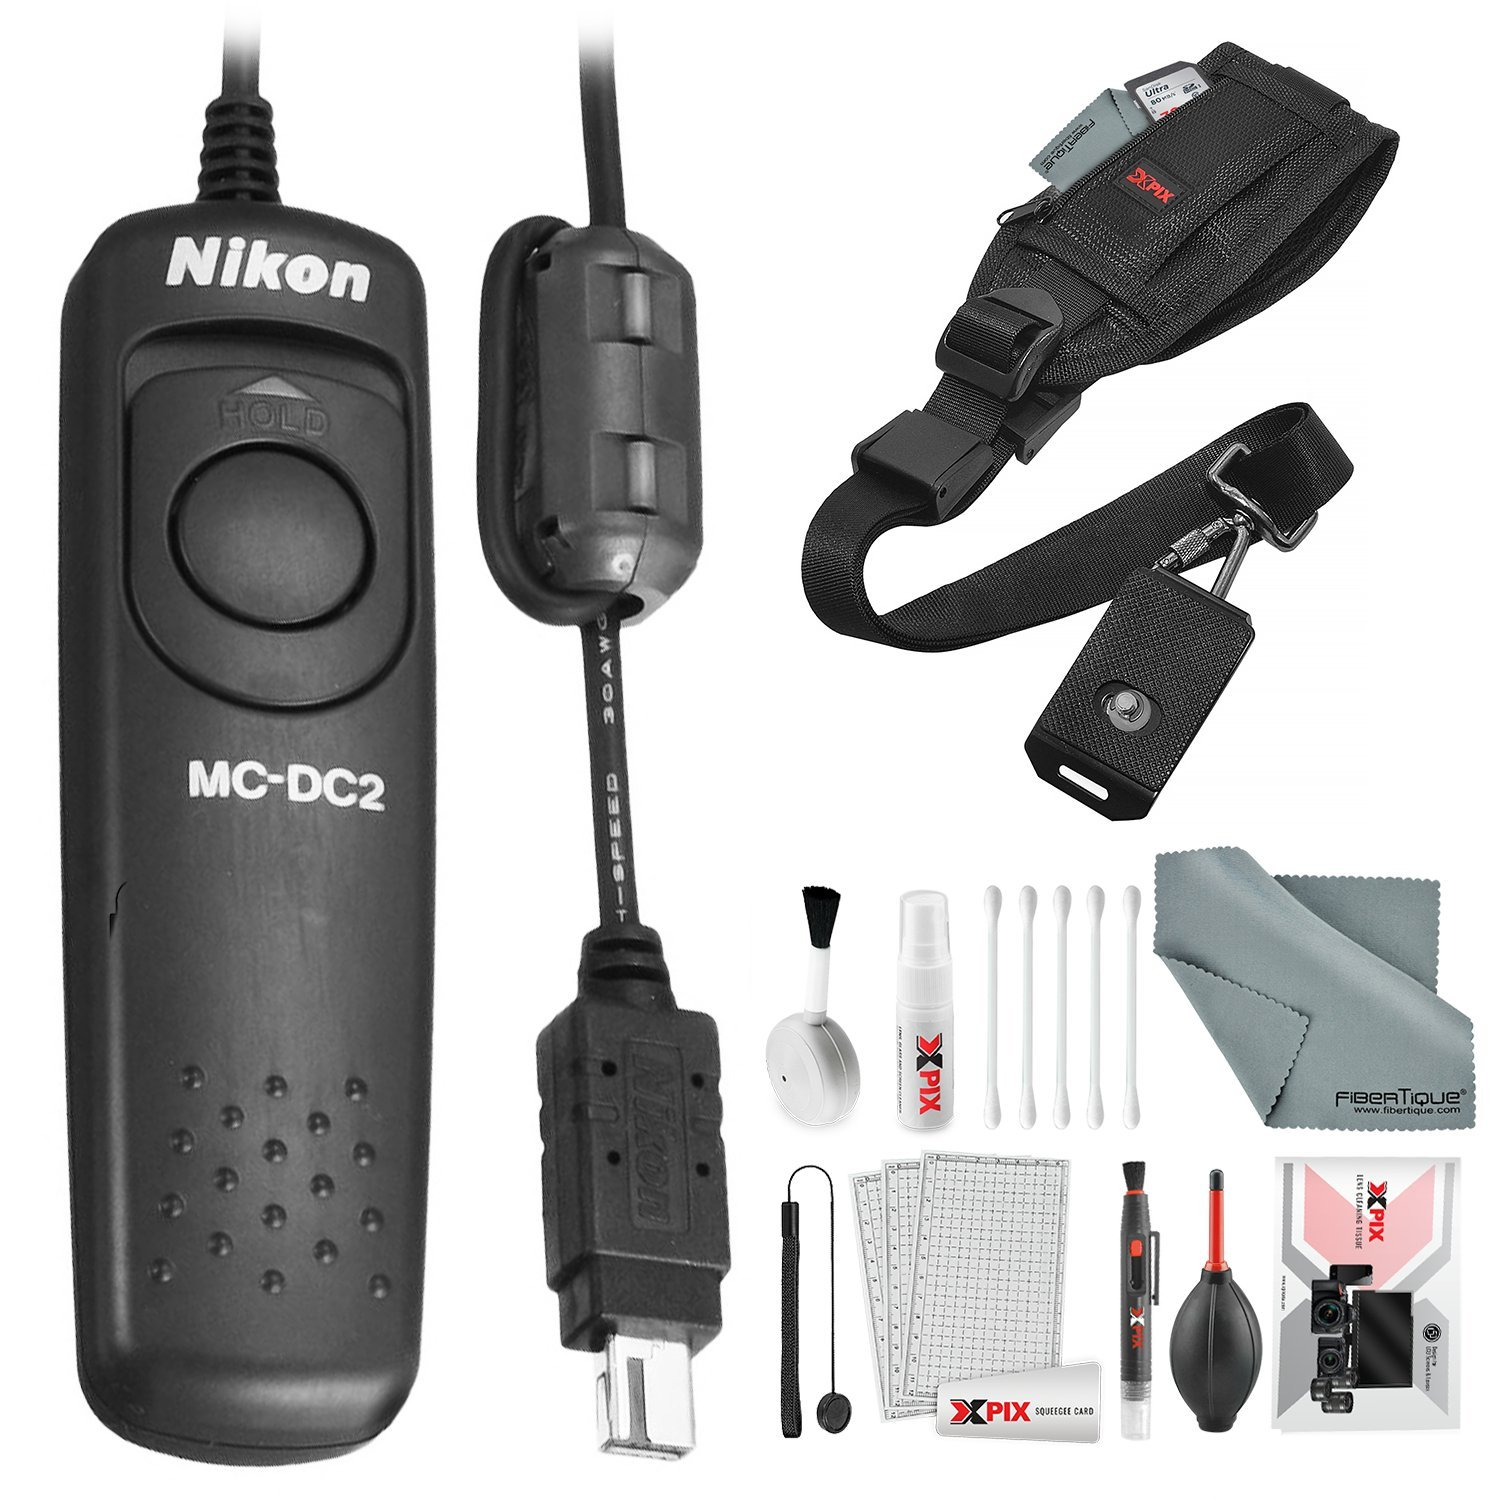 Nikon MC-DC2 Remote Release Cord with Xpix Camera Strap and Deluxe Camera Lens Cleaning Kit by Nikon